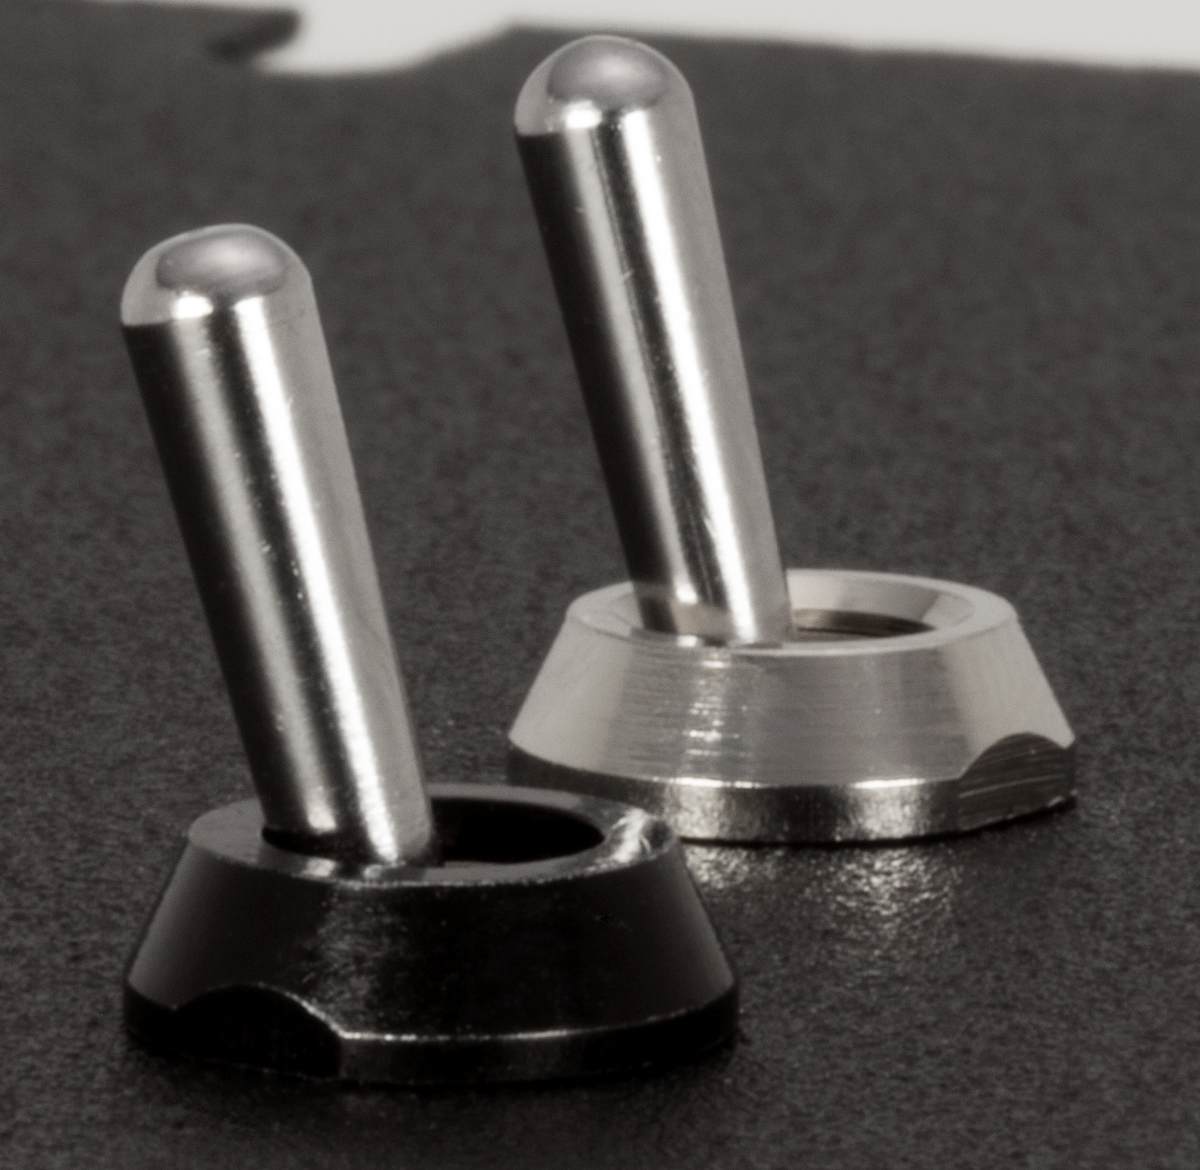 Nut - Dress Nut, For Mini Toggle Switches